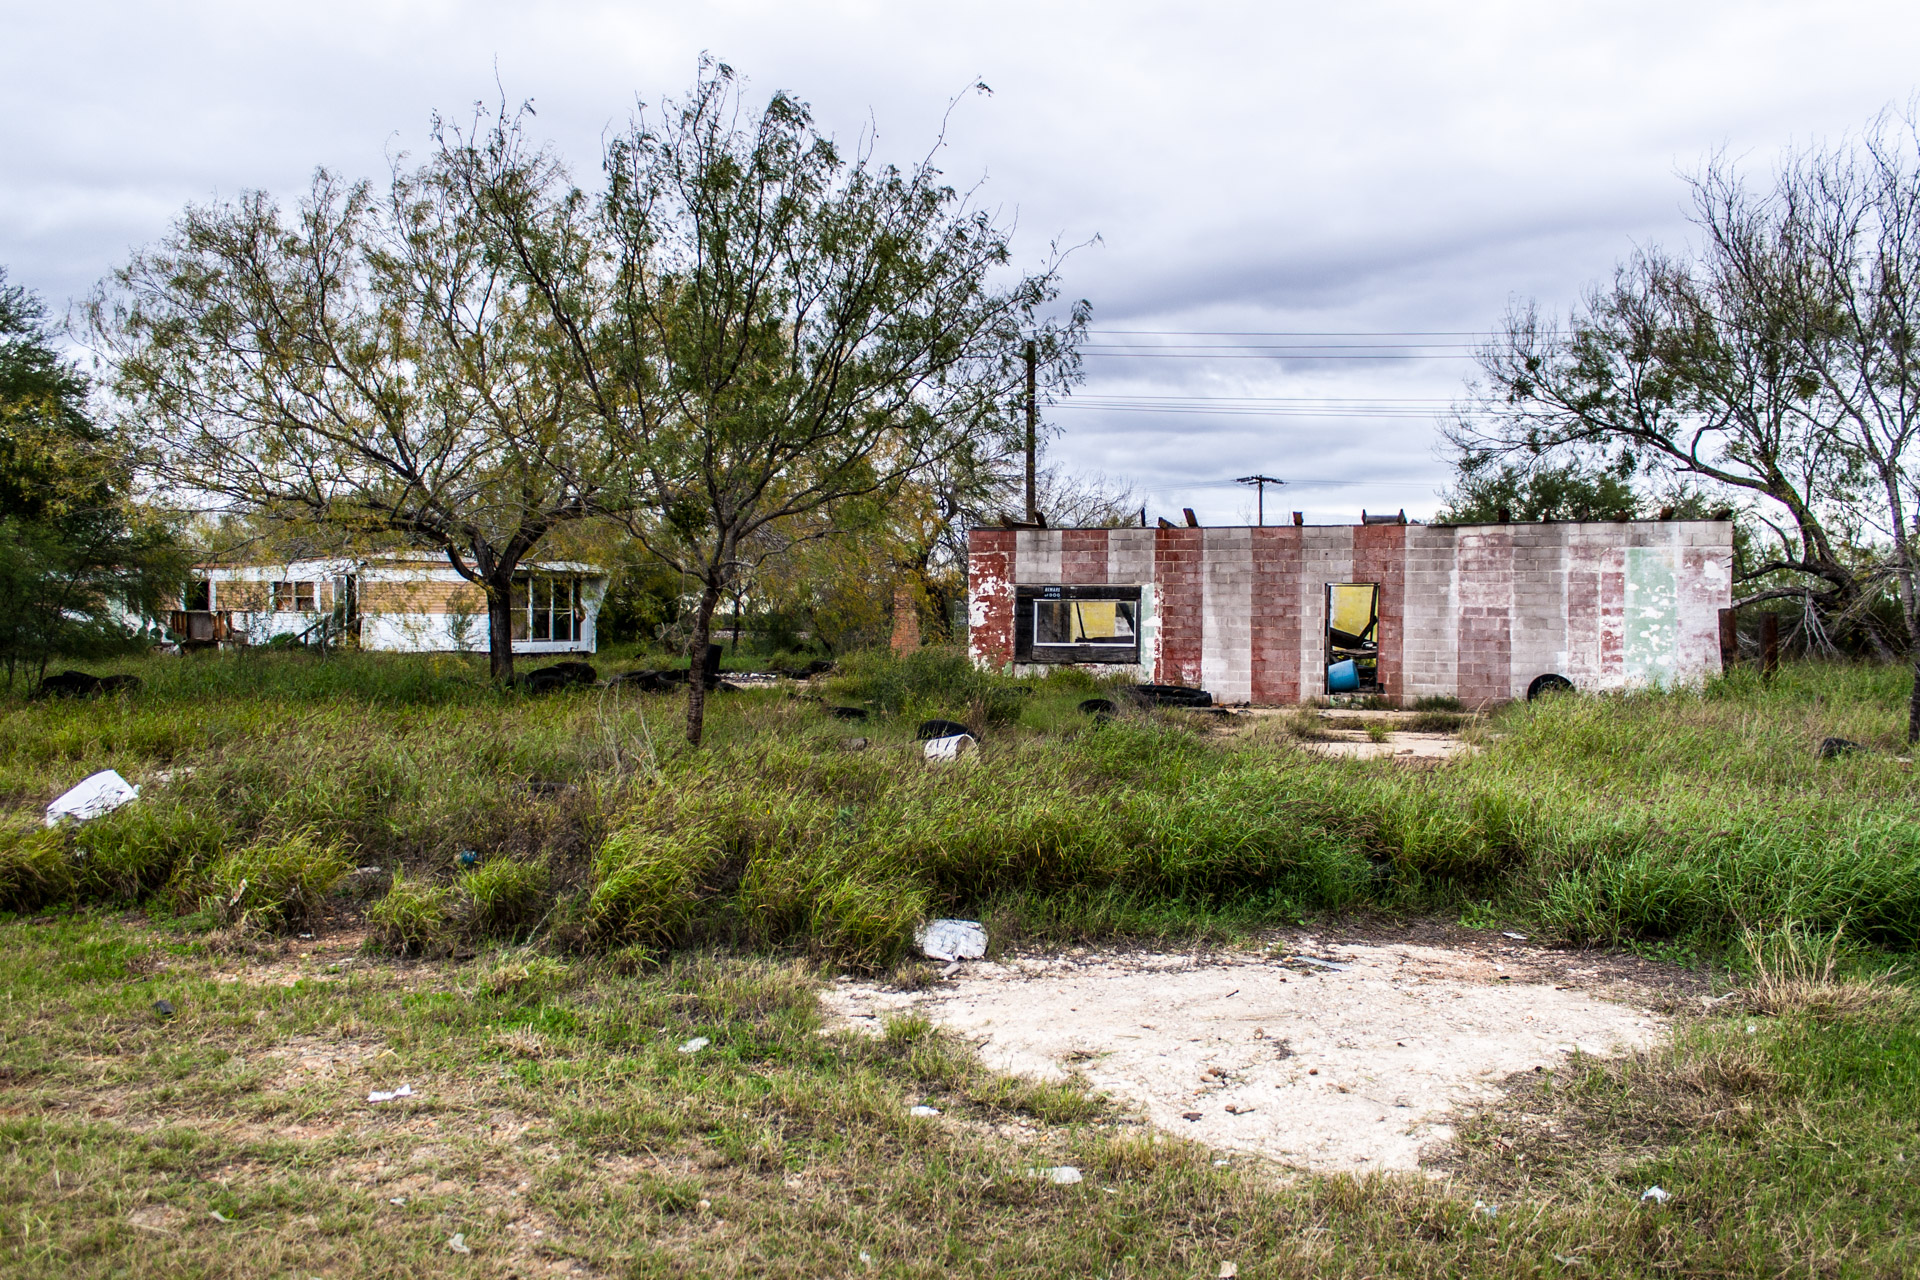 Pearsall, Texas - A Ruin, A Trailer, And Some Tires